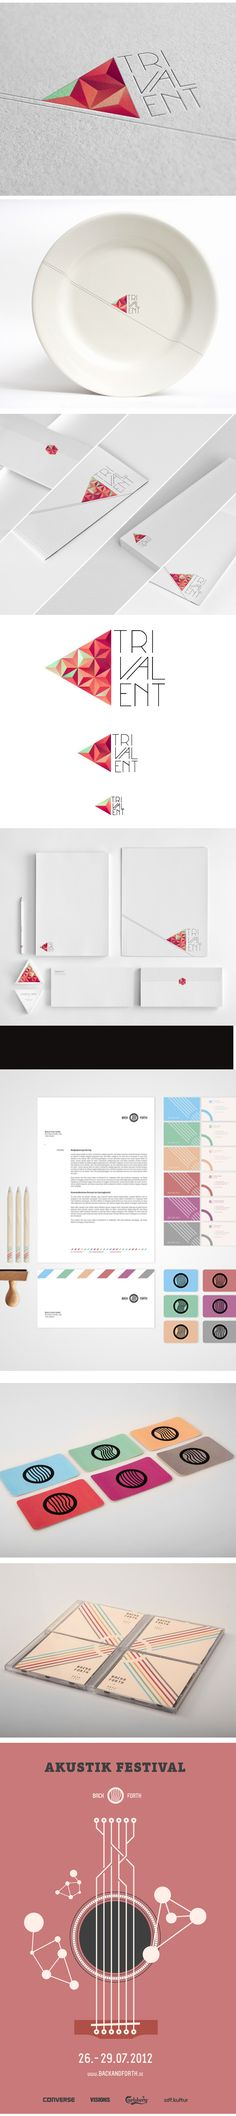 Branding and identity Corporate Design, Brand Identity Design, Graphic Design Typography, Graphic Design Illustration, Collateral Design, Web Design, Brand Packaging, Packaging Design, Logos Online